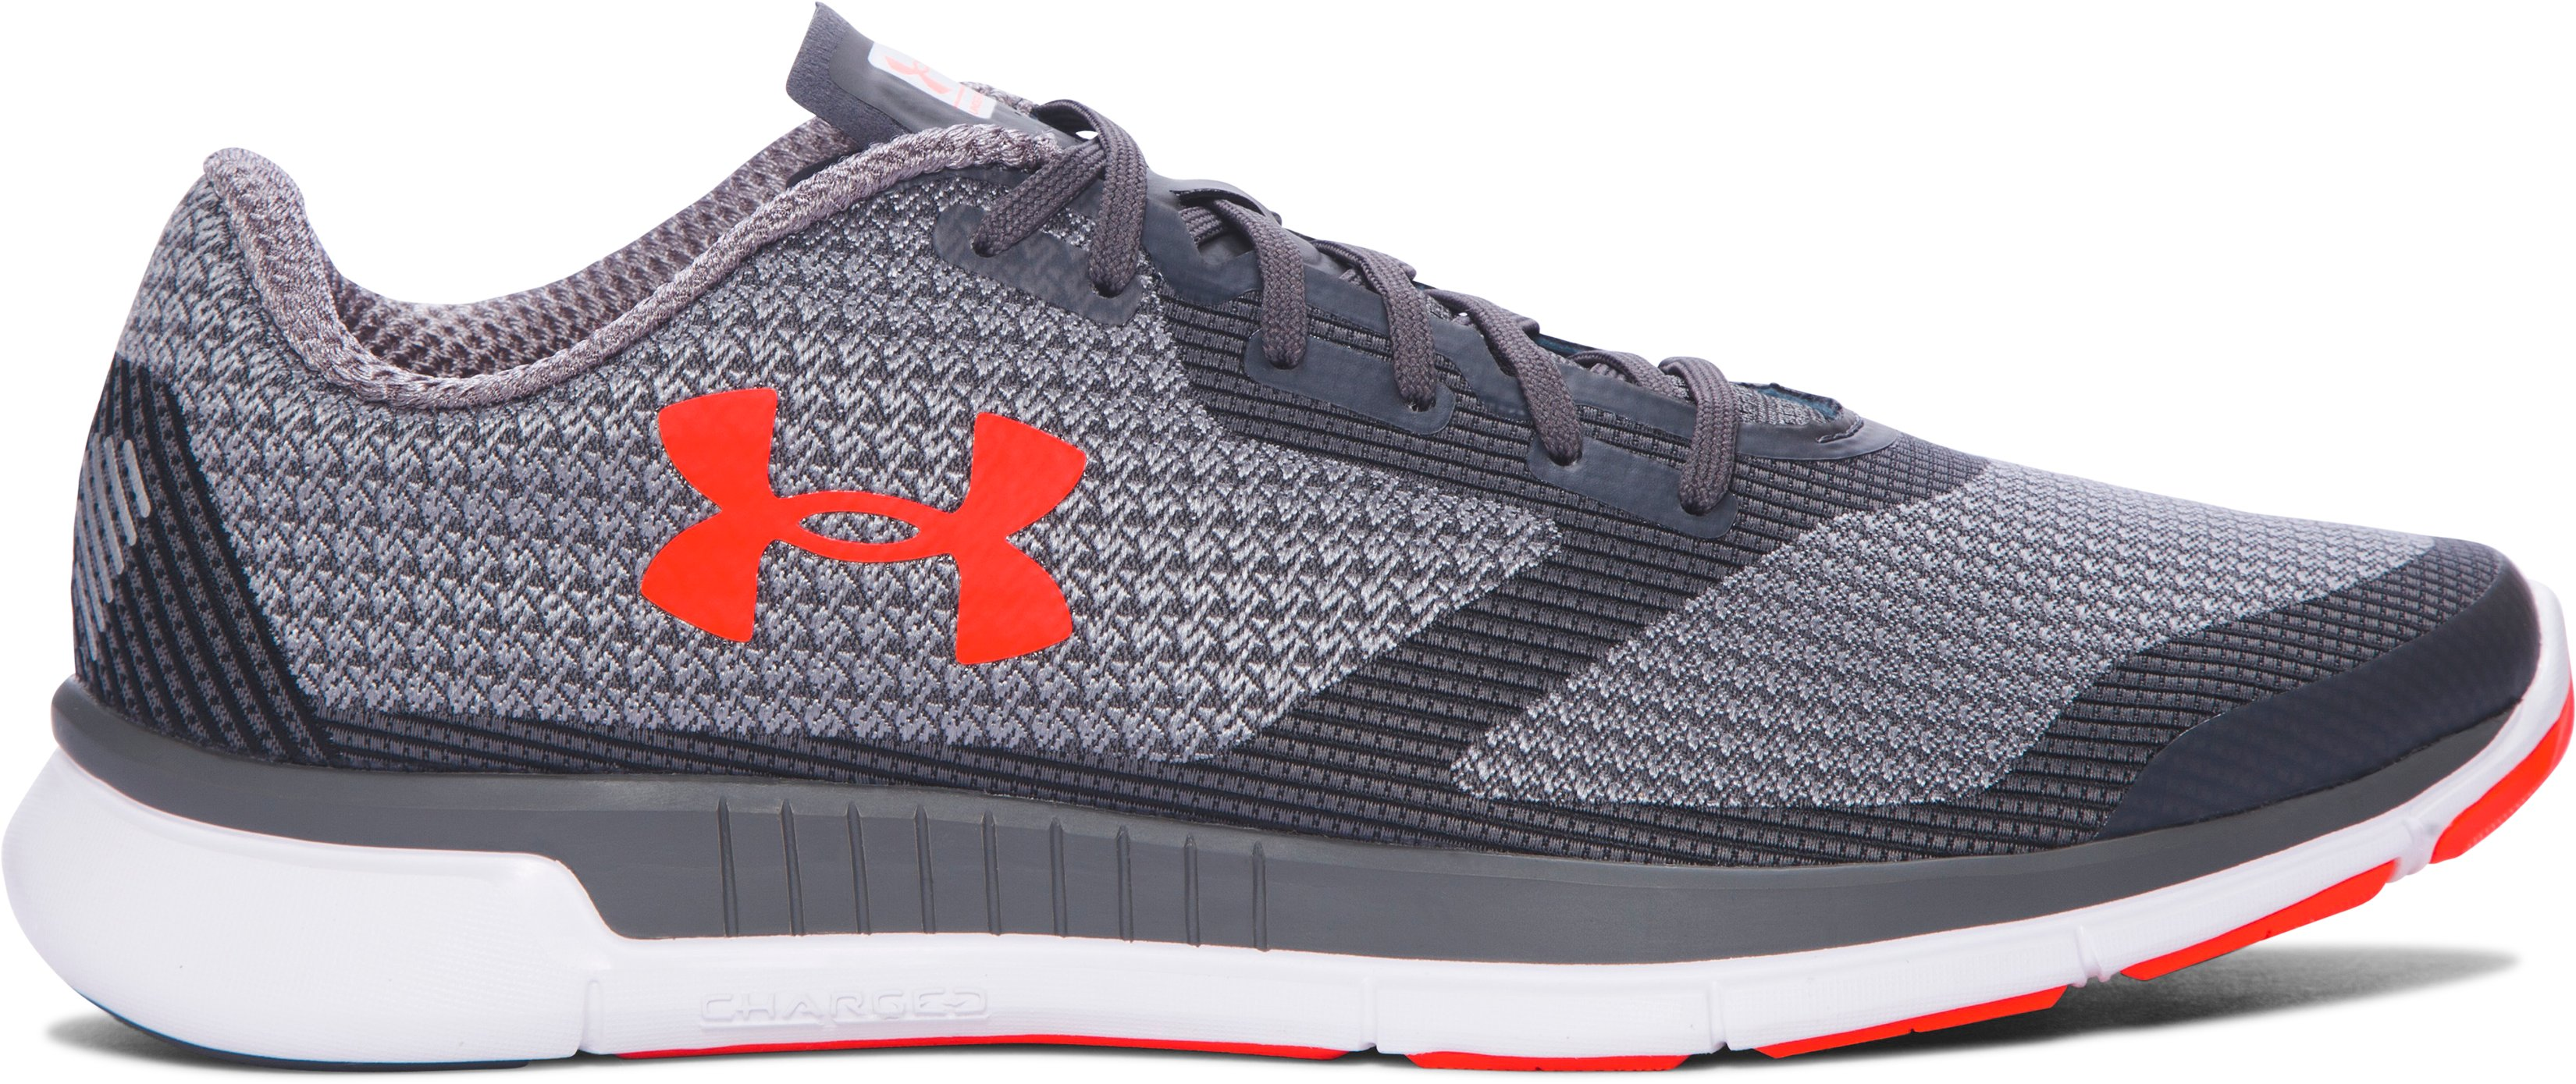 , RHINO GRAY, zoomed